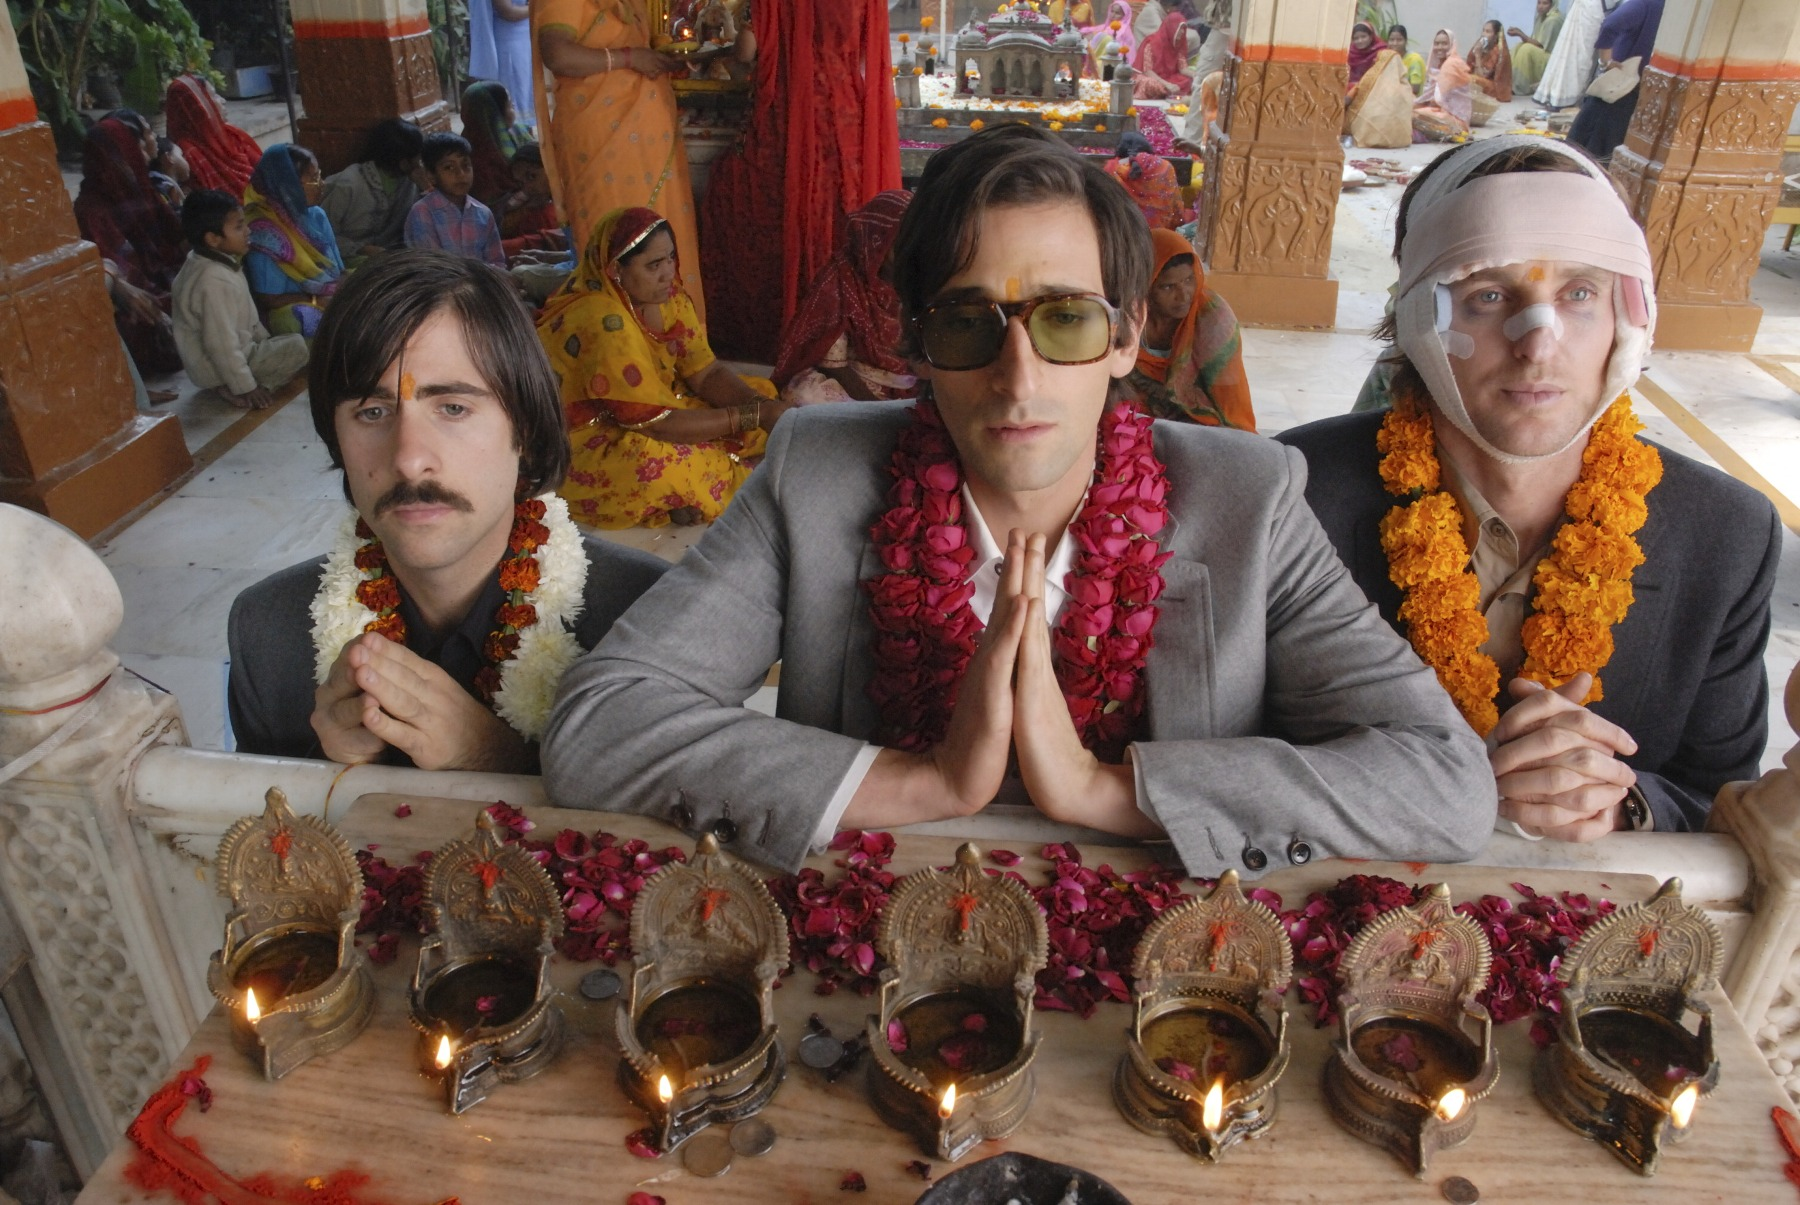 THE_DARJEELING_LIMITED_di_Wes_Anderson__4_.jpg